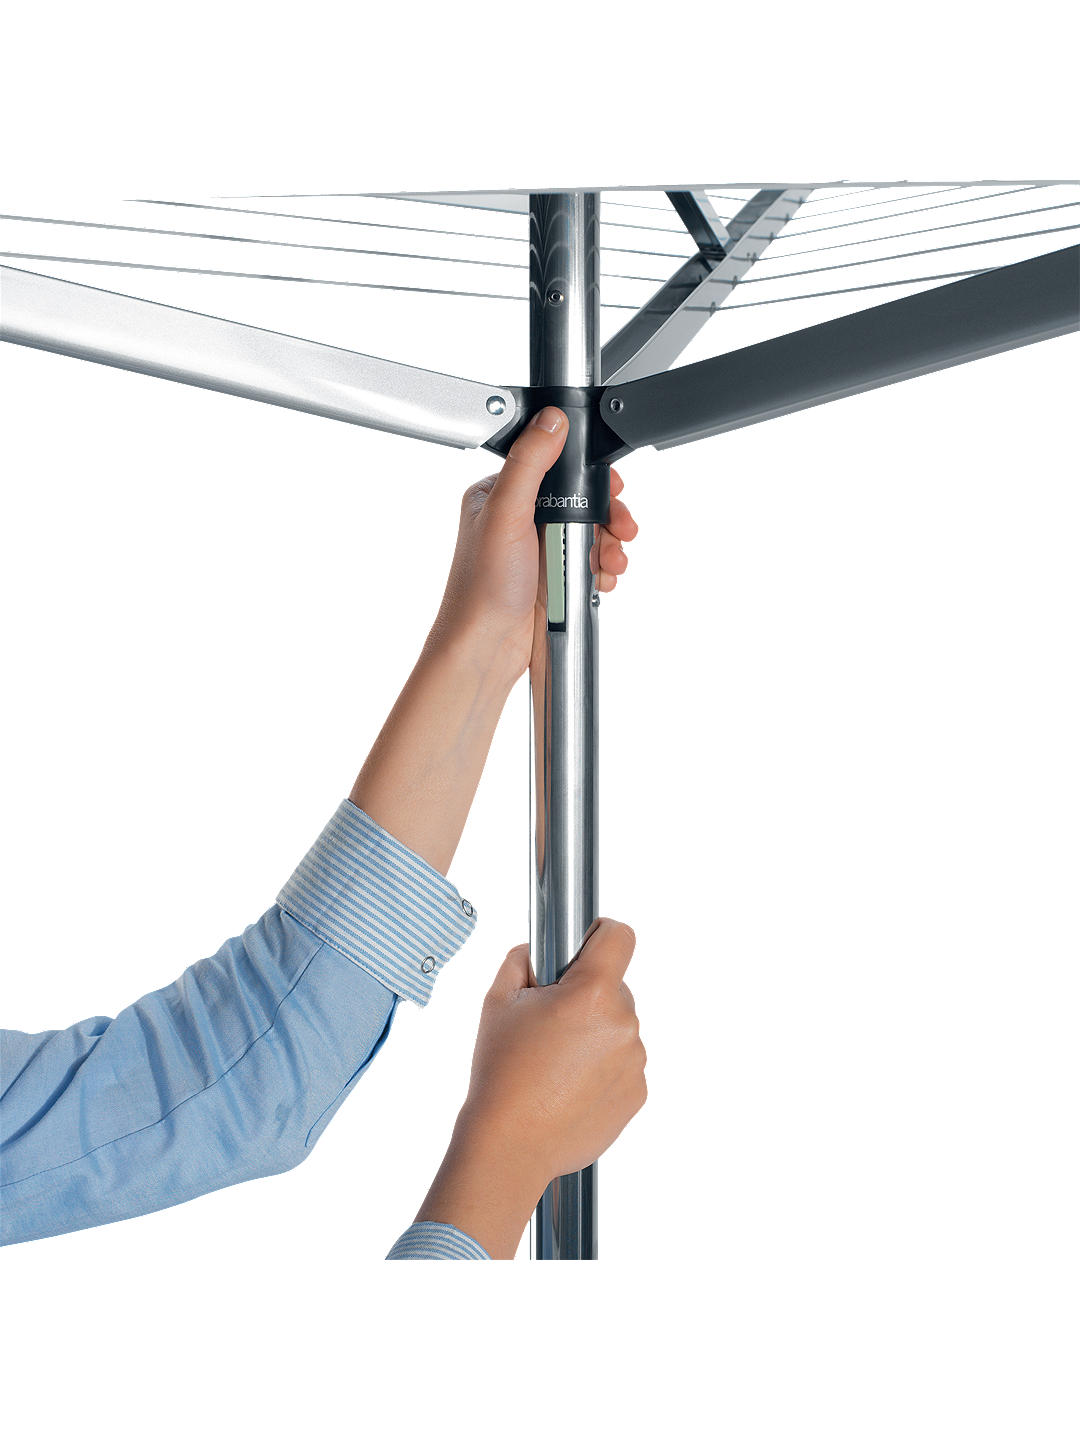 Brabantia compact rotary clothes airer washing line 30m soapy steel wool